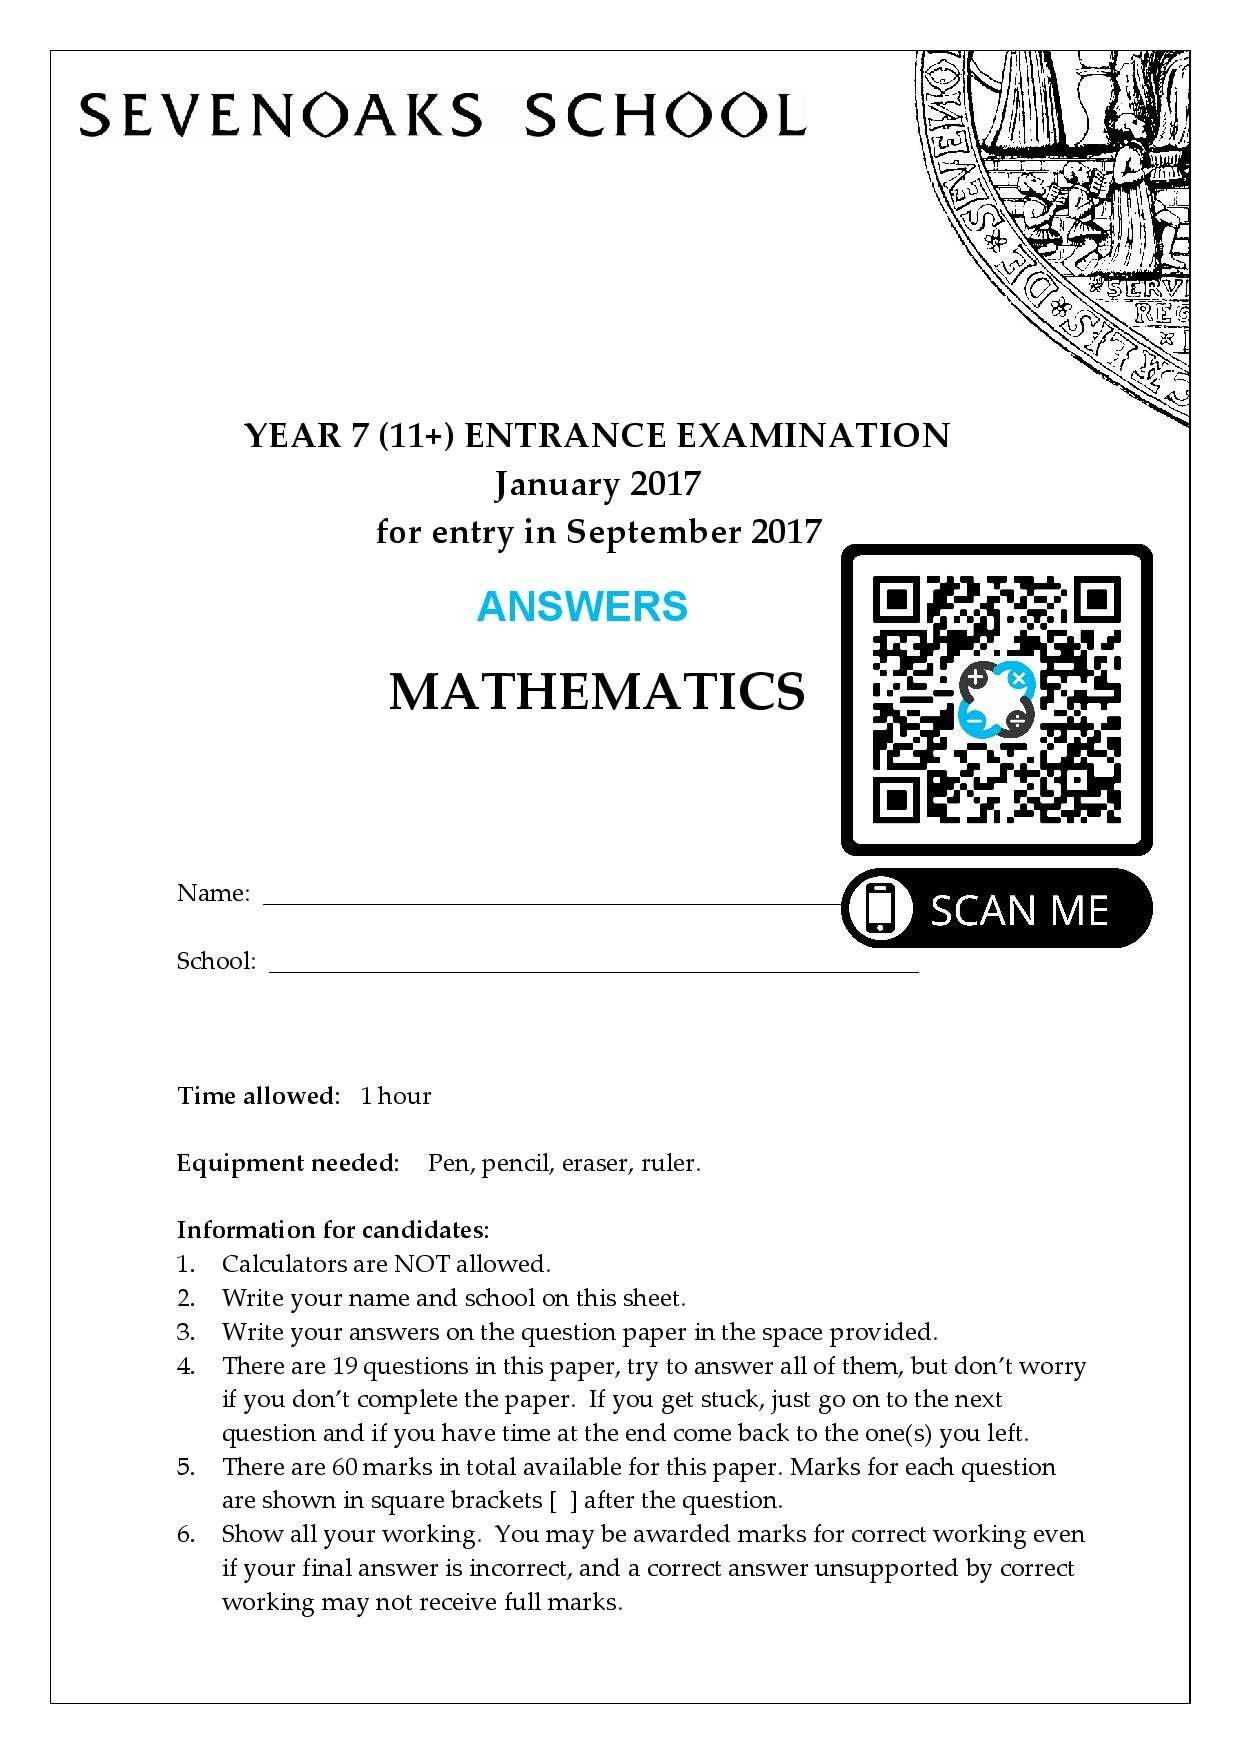 Sevenoaks School YEAR 7 11 ENTRANCE EXAMINATION January 2017 for entry in September 2017 MATHEMATICS Answer Paper page 001